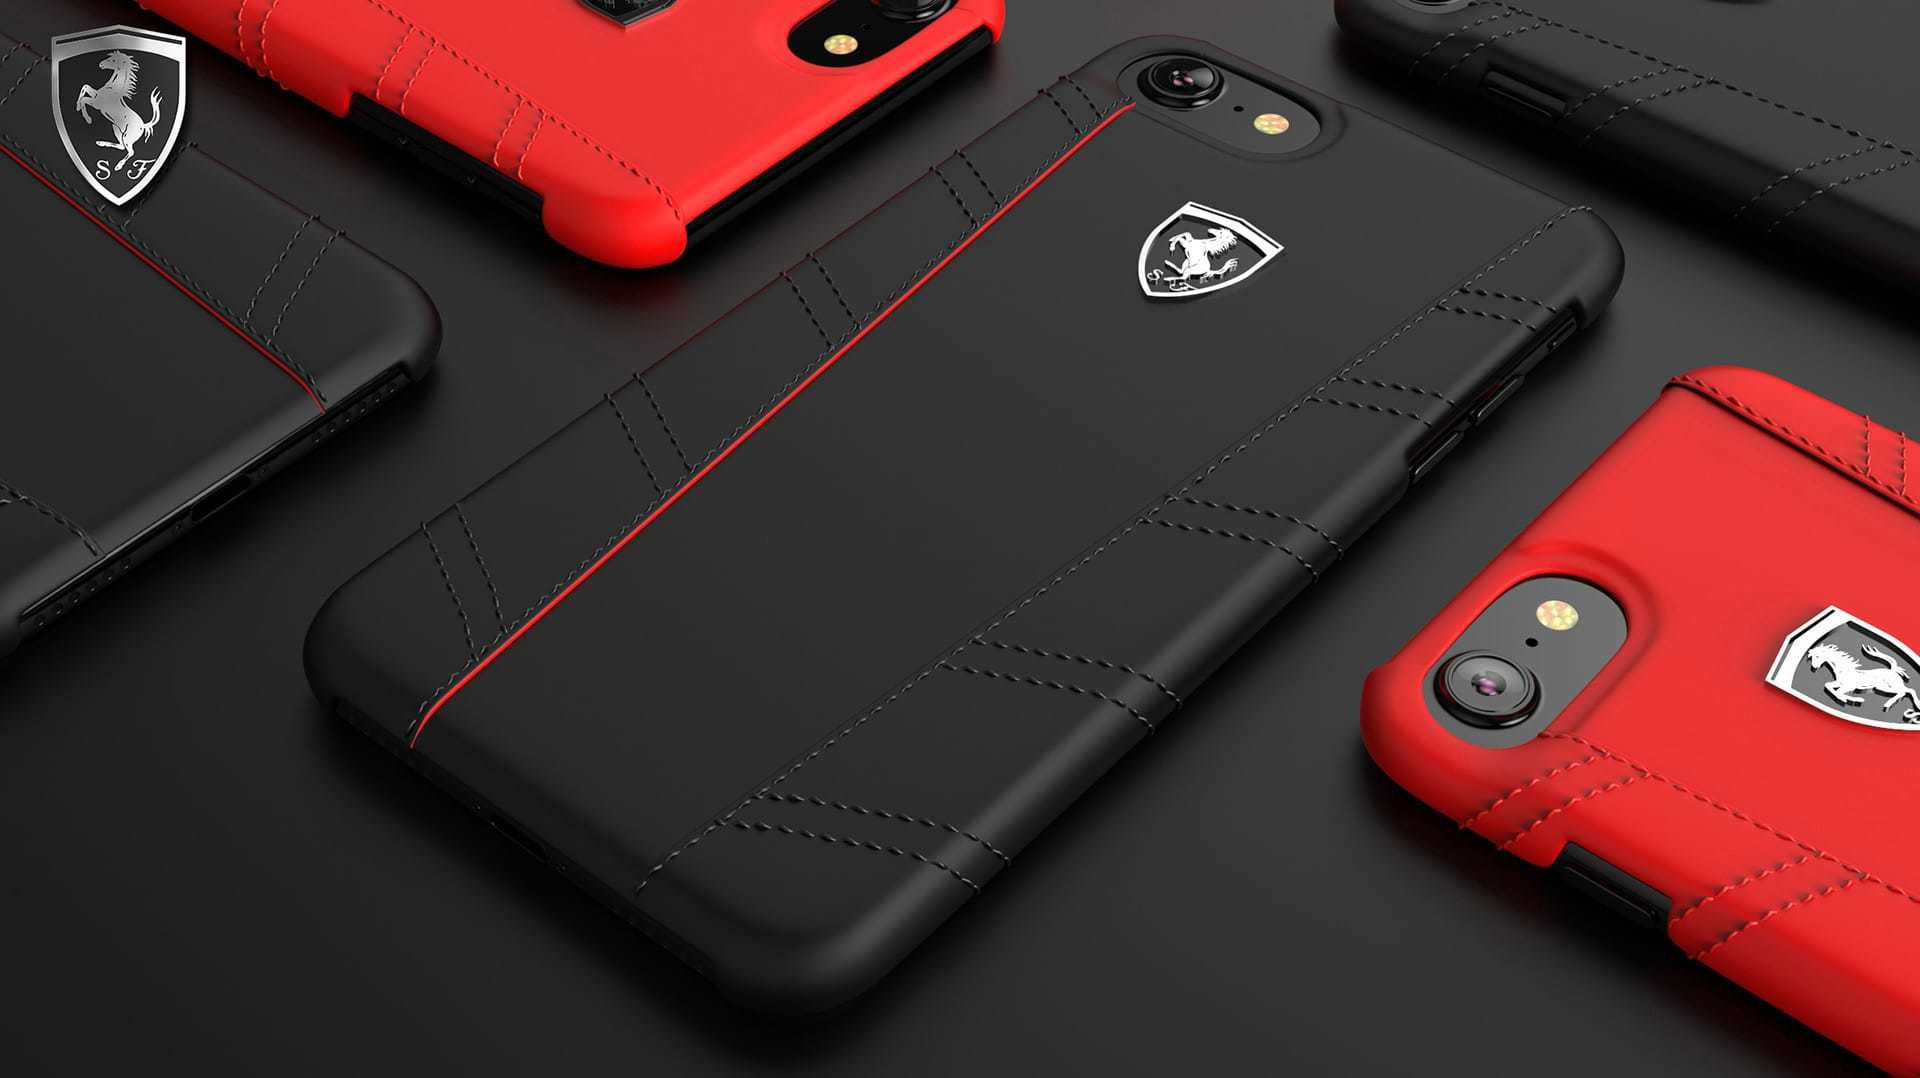 brand new c2b0c 051d1 Ferrari ® Apple iPhone 7 Italian Series Leather Stitched Dual-Material PU  Leather Back Cover